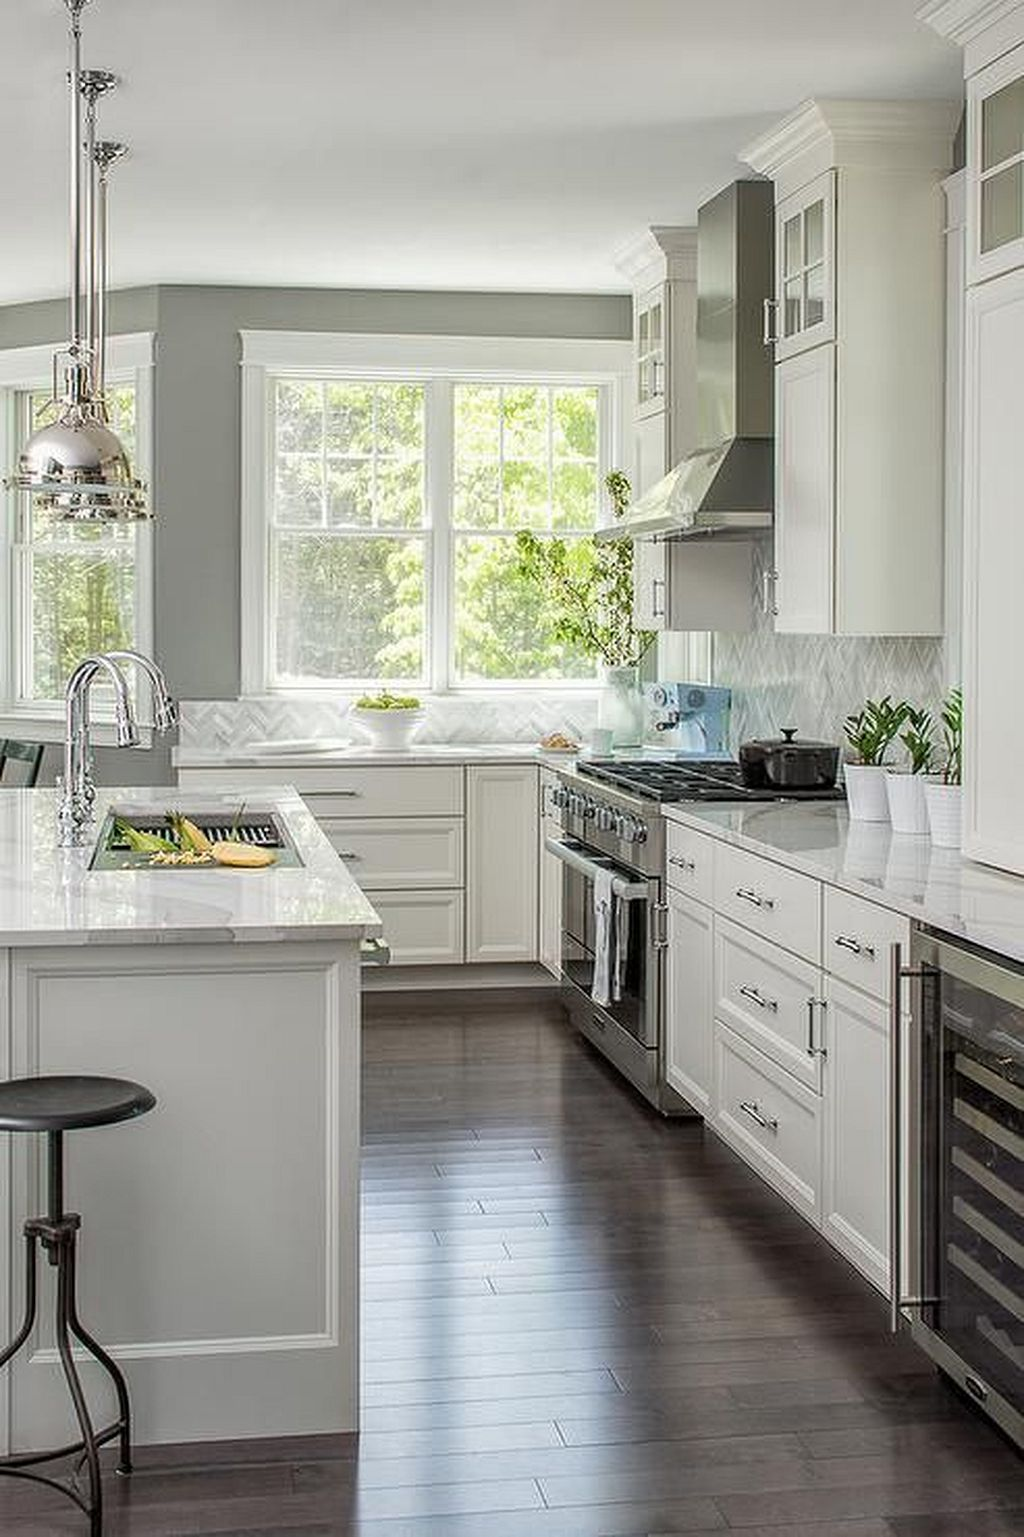 Download Wallpaper Images Of White Kitchen Cabinets With Gray Walls